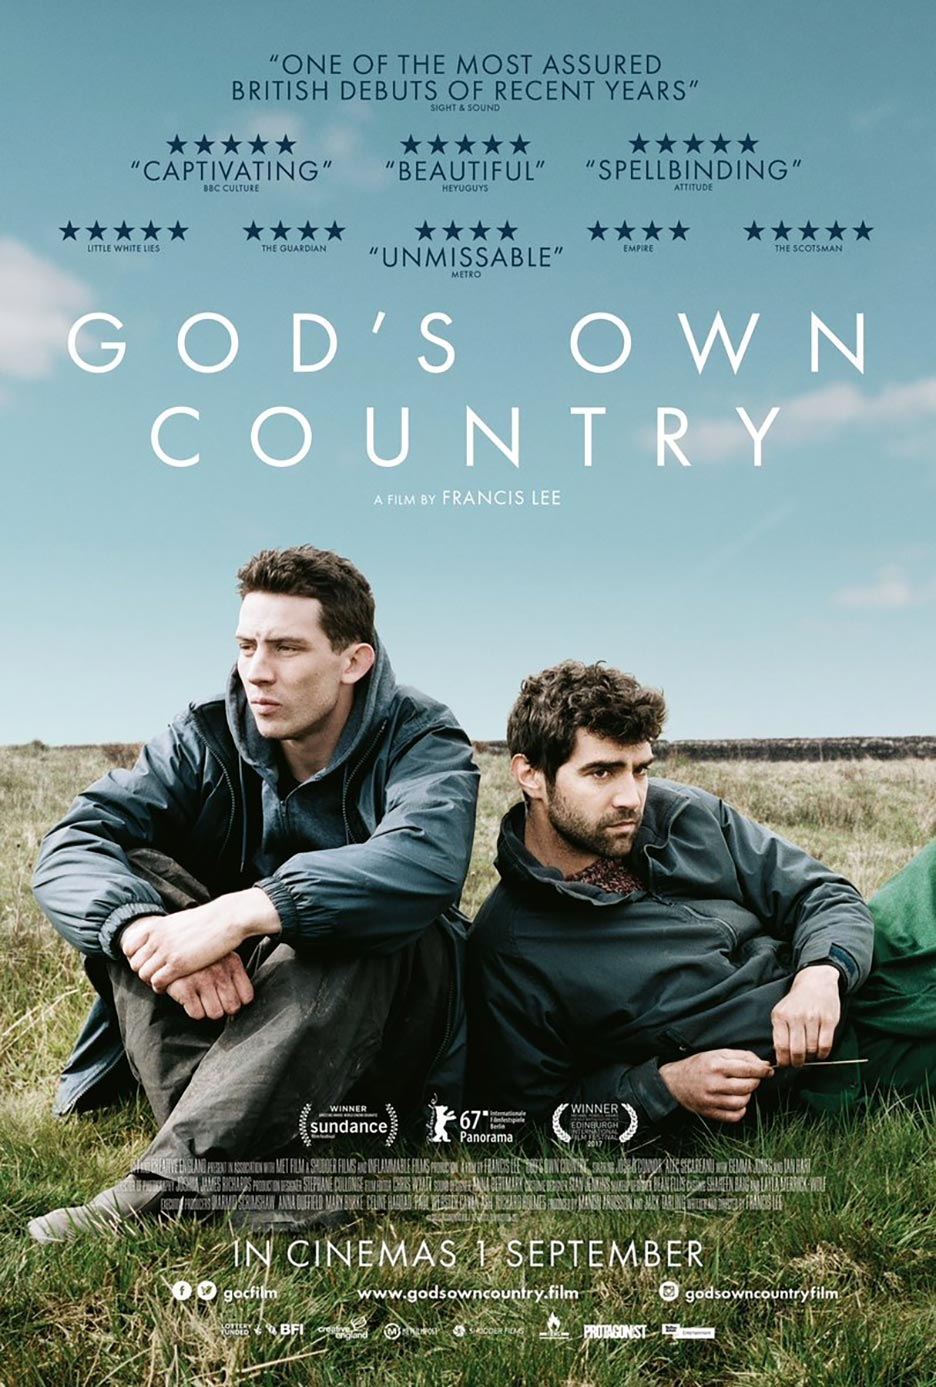 gods-own-country-poster